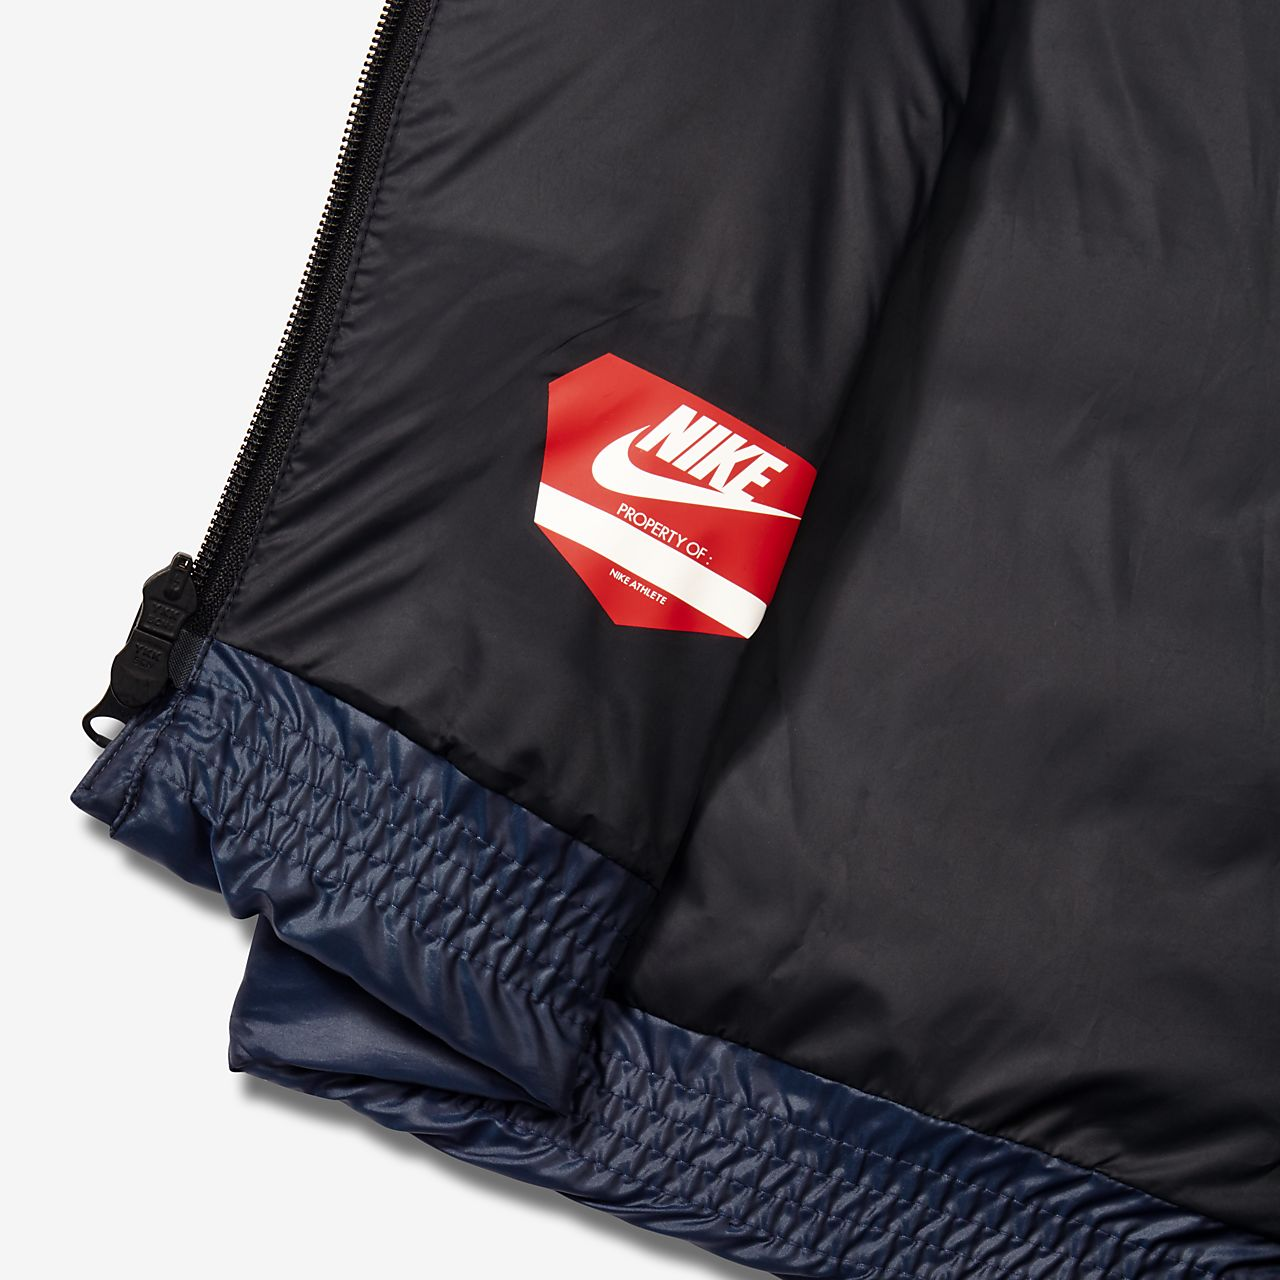 Nike Sportswear Older Kids' (Girls') Down Jacket